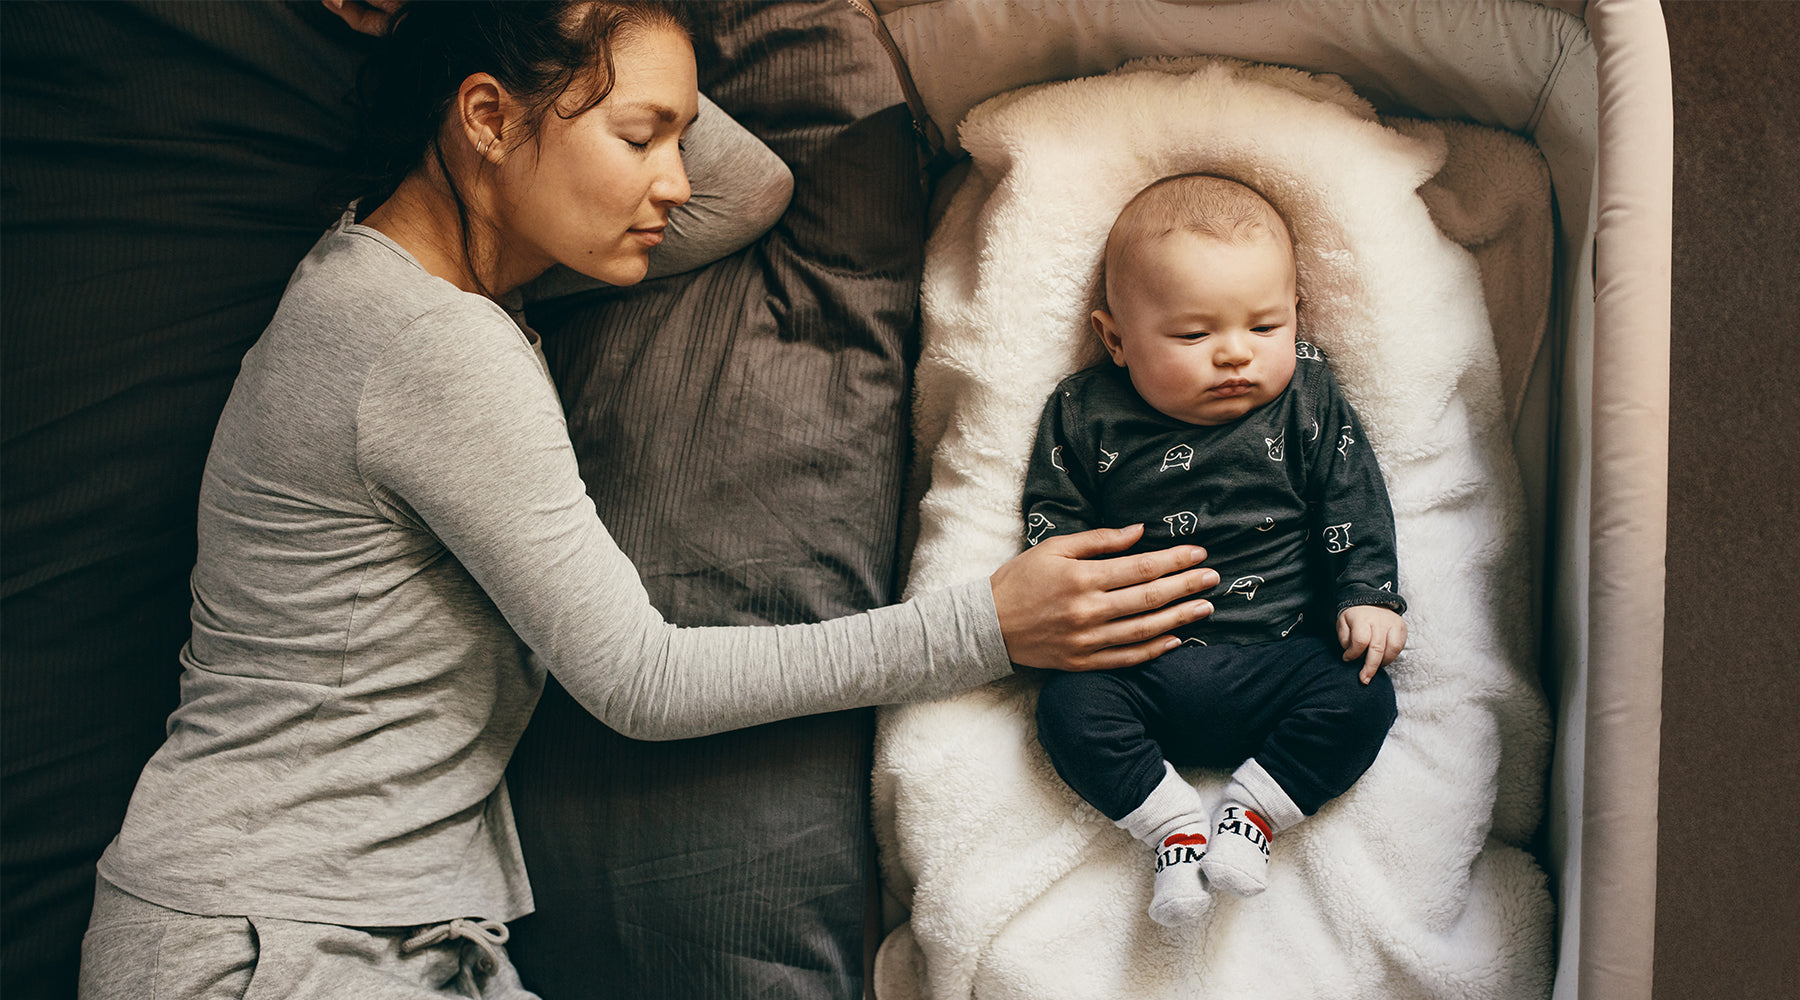 To Co-Sleep or Not to Co-Sleep With Your Baby?